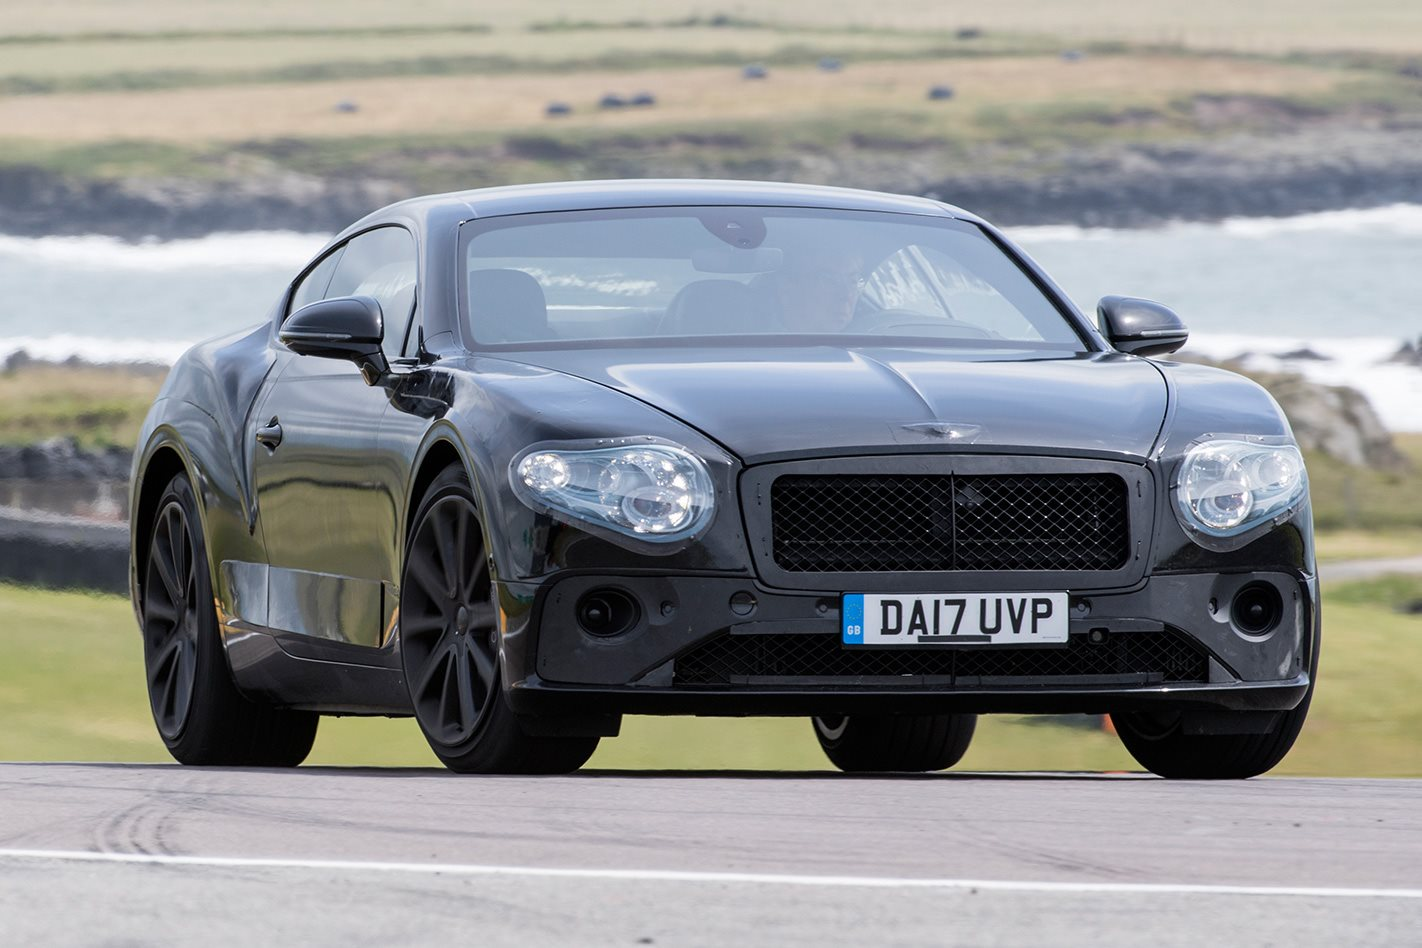 2018 Bentley Continental GT protoype front facing